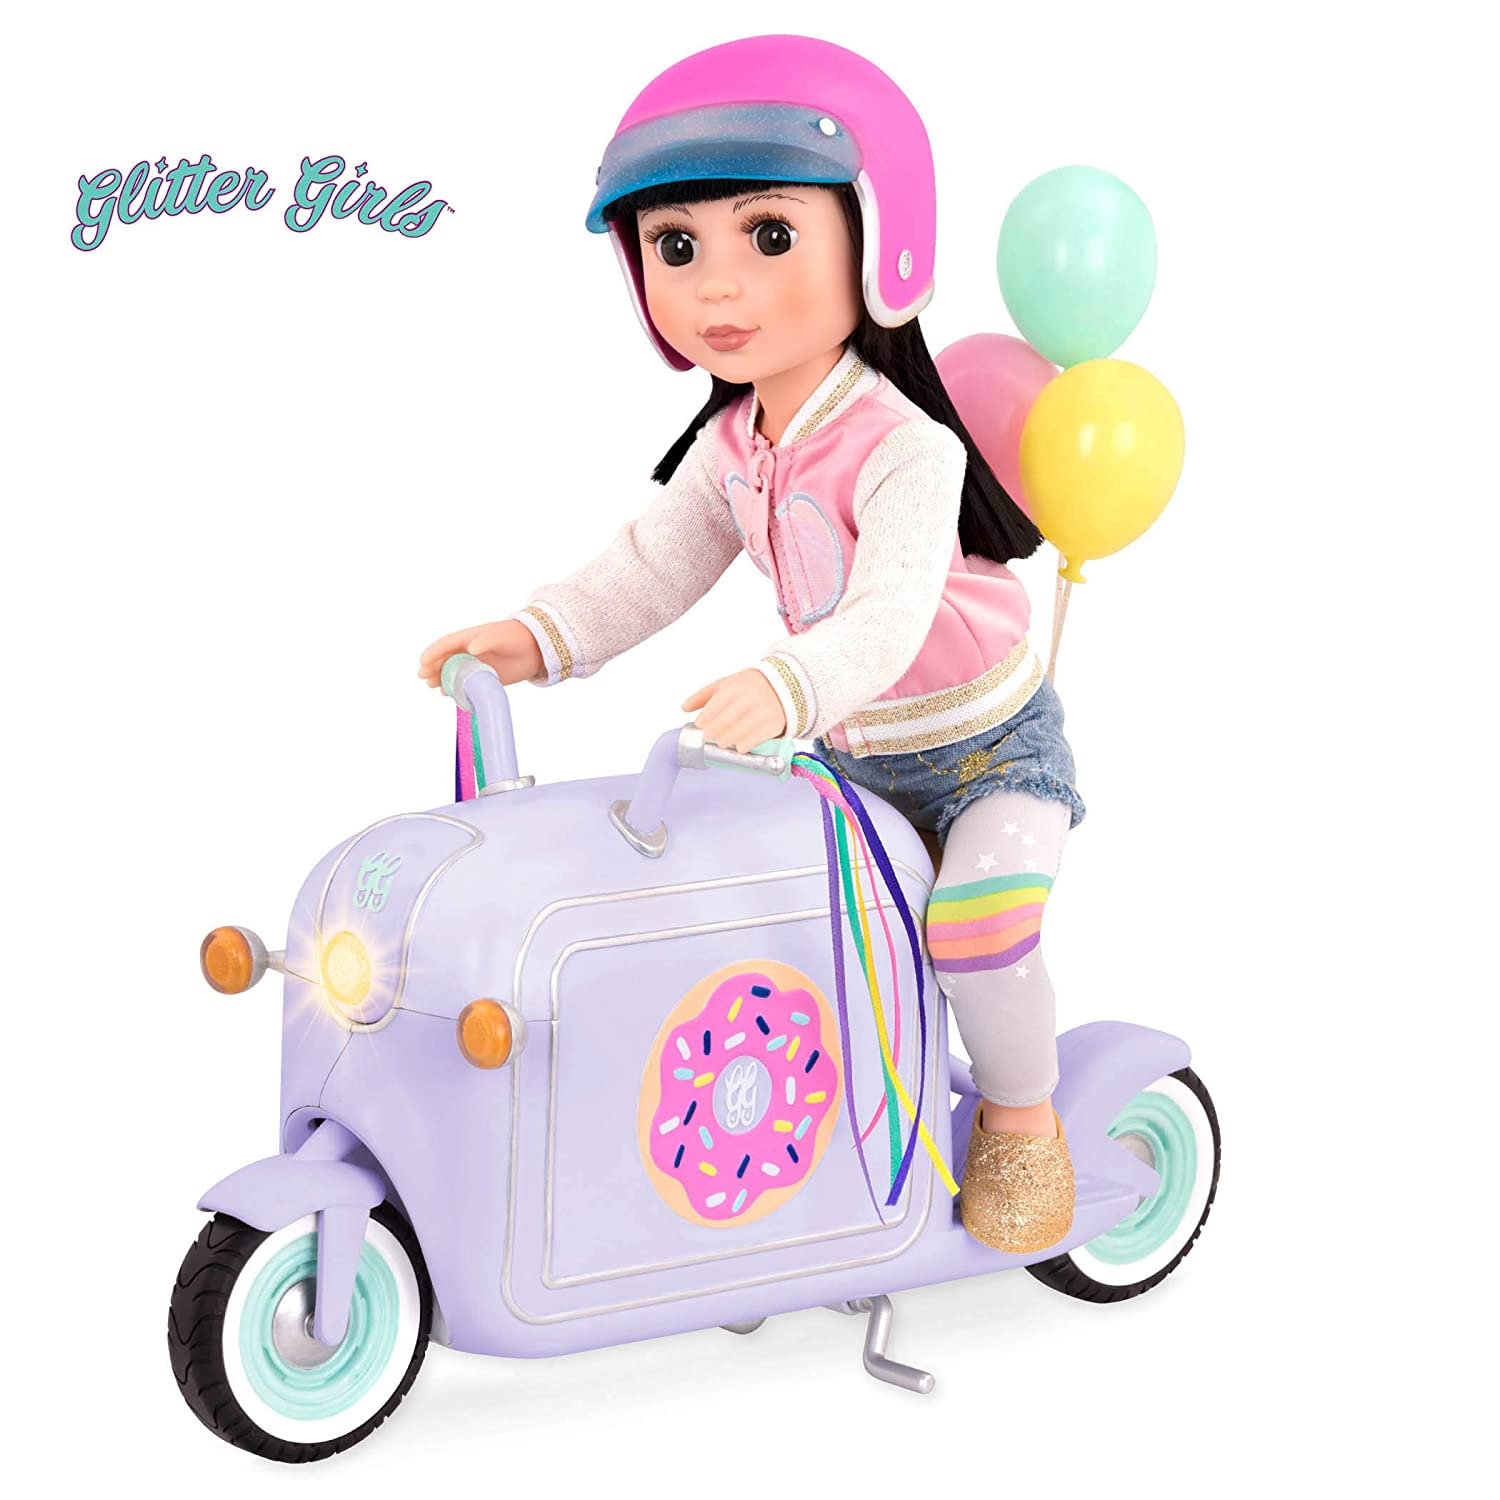 Glitter Girls by Battat – Donut Delivery Scooter – Toy Car, Bike, and Vehicle Accessories for 14-inch Dolls – Ages 3 and Up